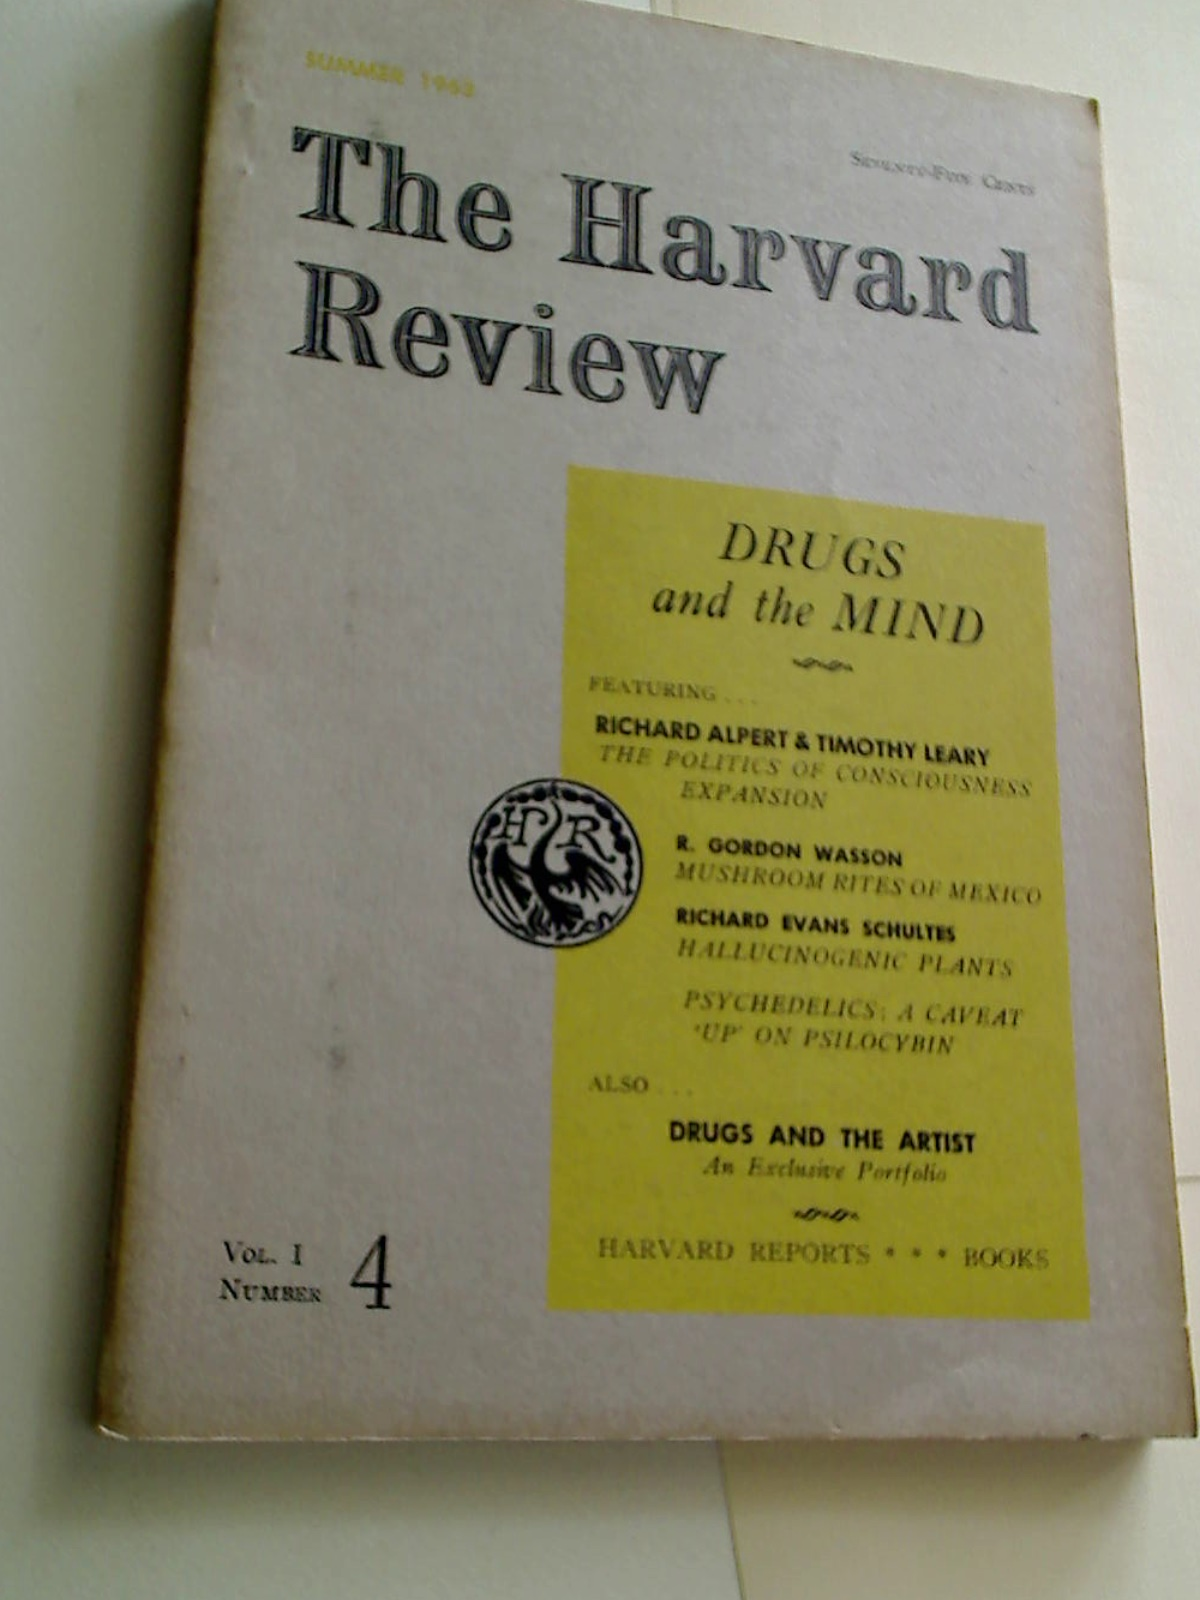 Drugs and the Mind. (The Harvard Review: Volume 1, Number 4)